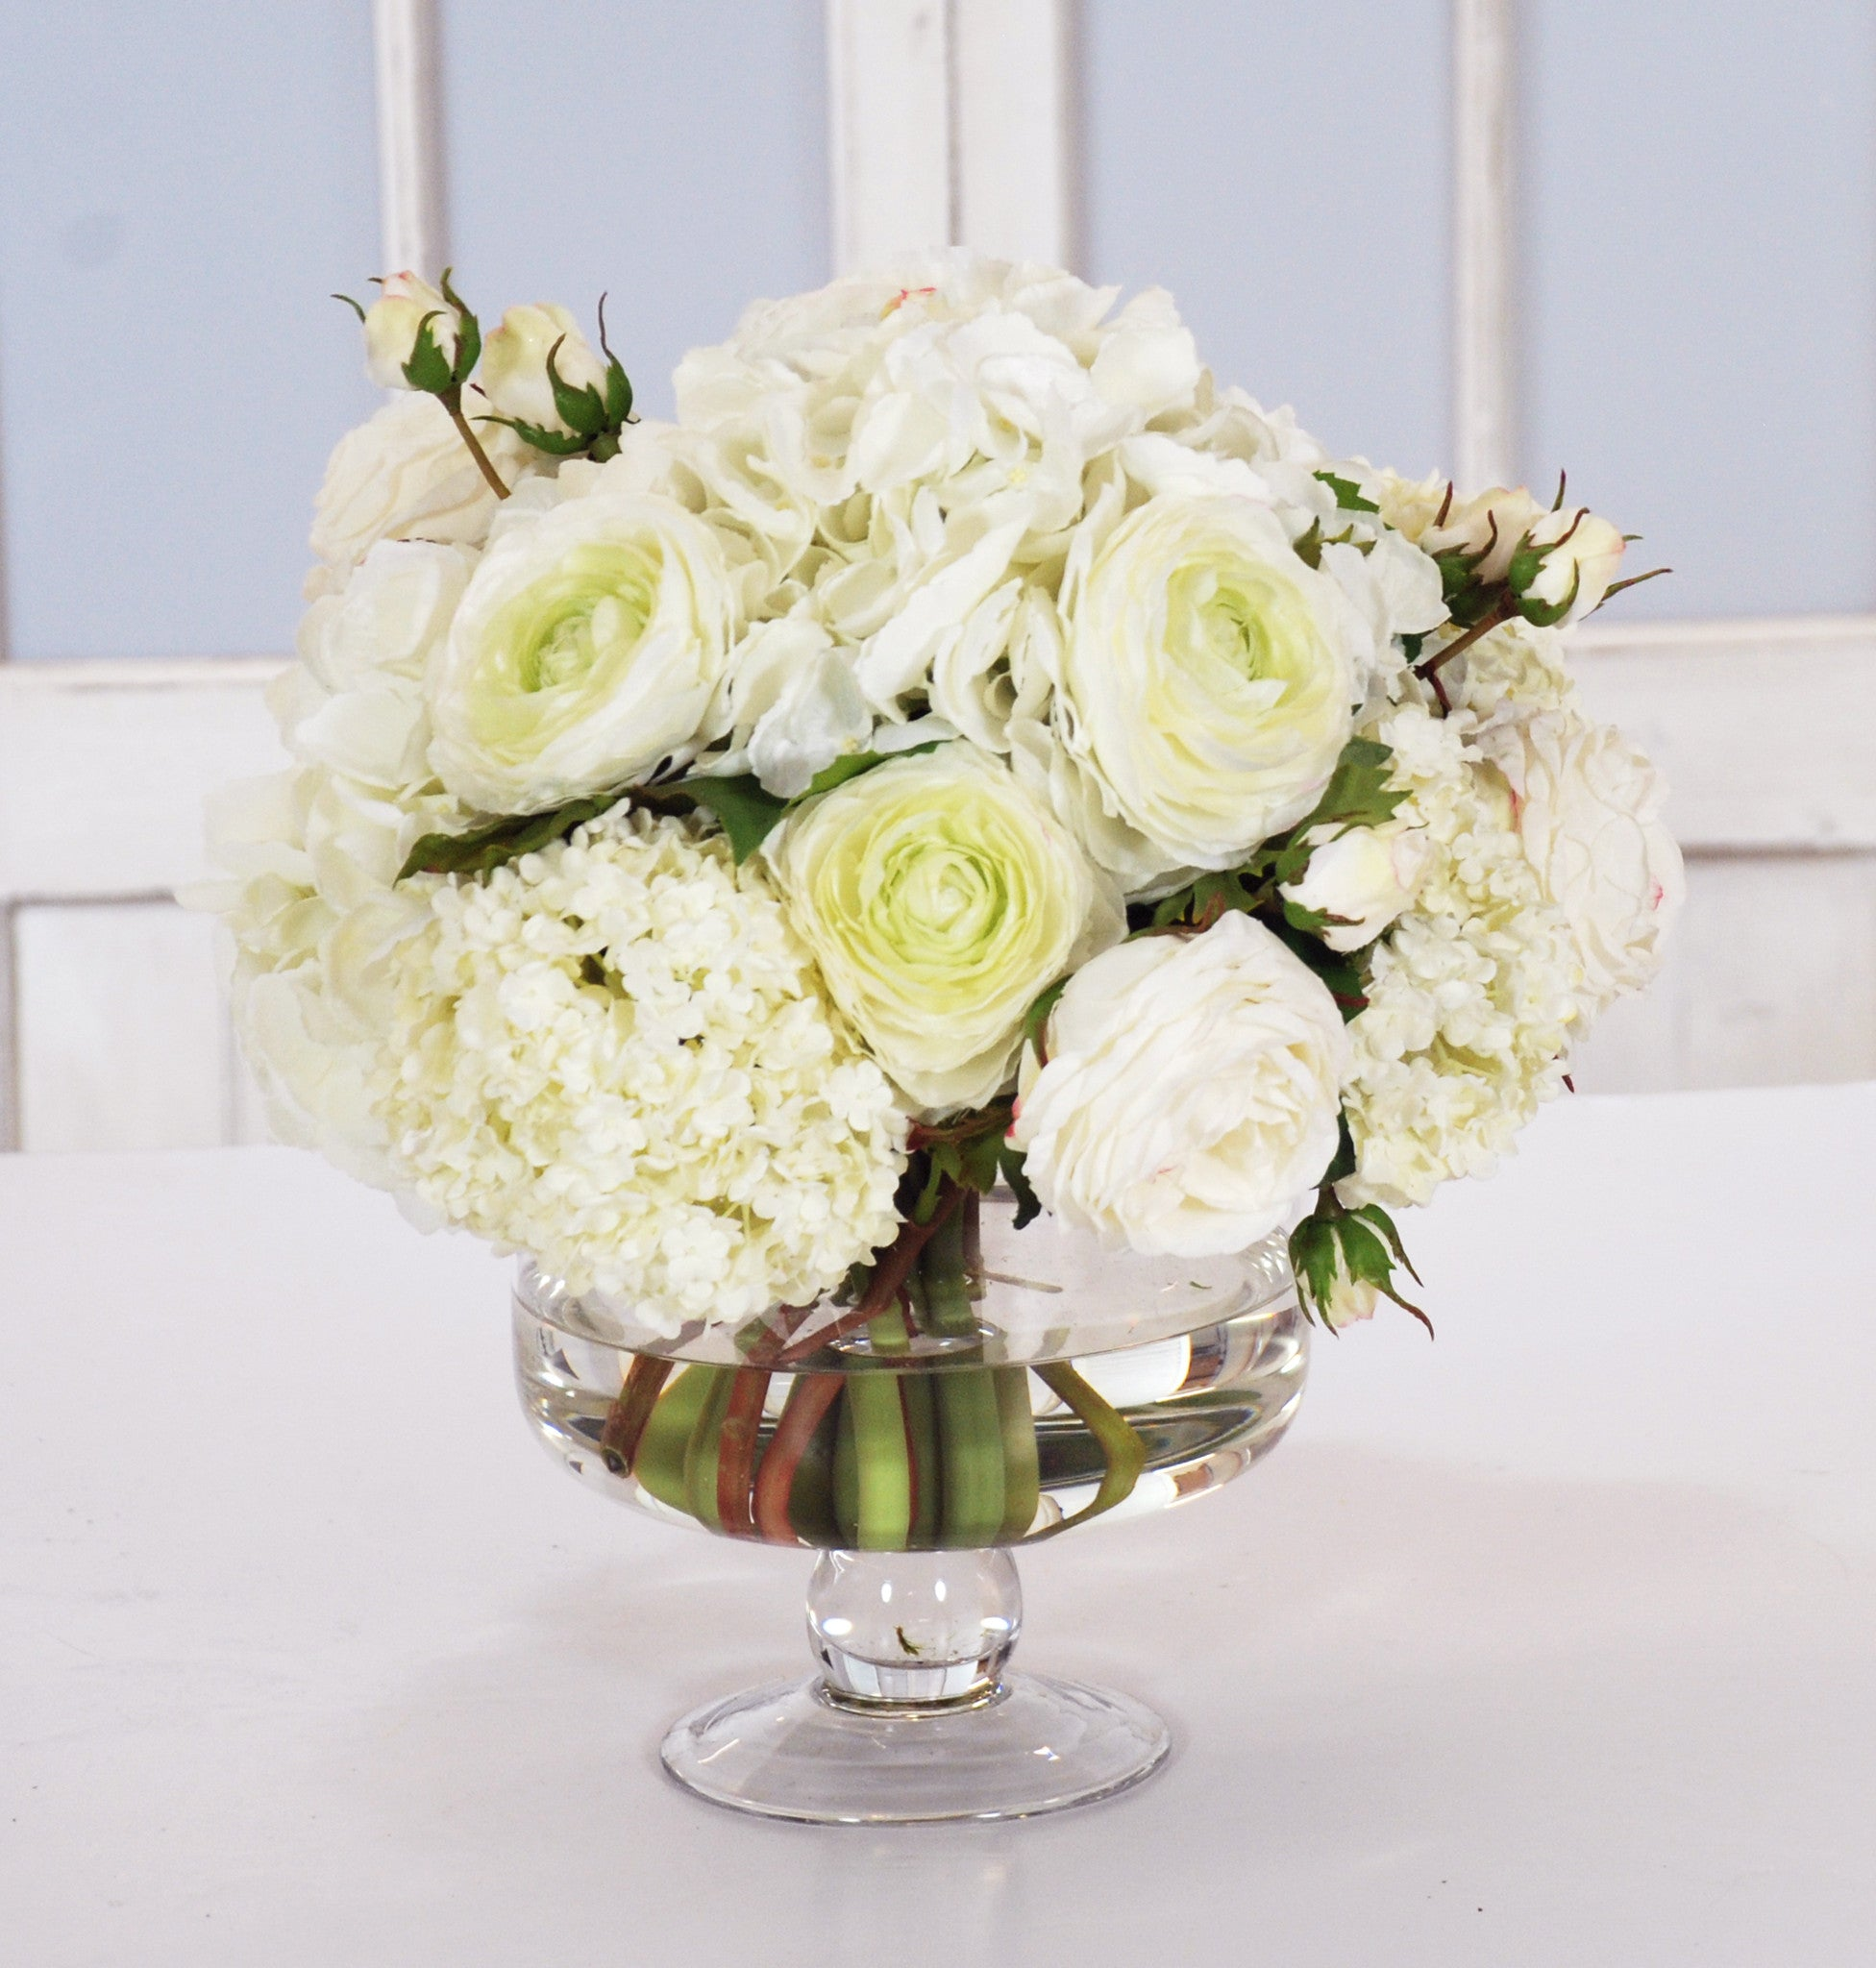 HYDRANGEA & RANUNCULUS IN COMPOTE (WHD105-WH) - Winward Home faux floral arrangements